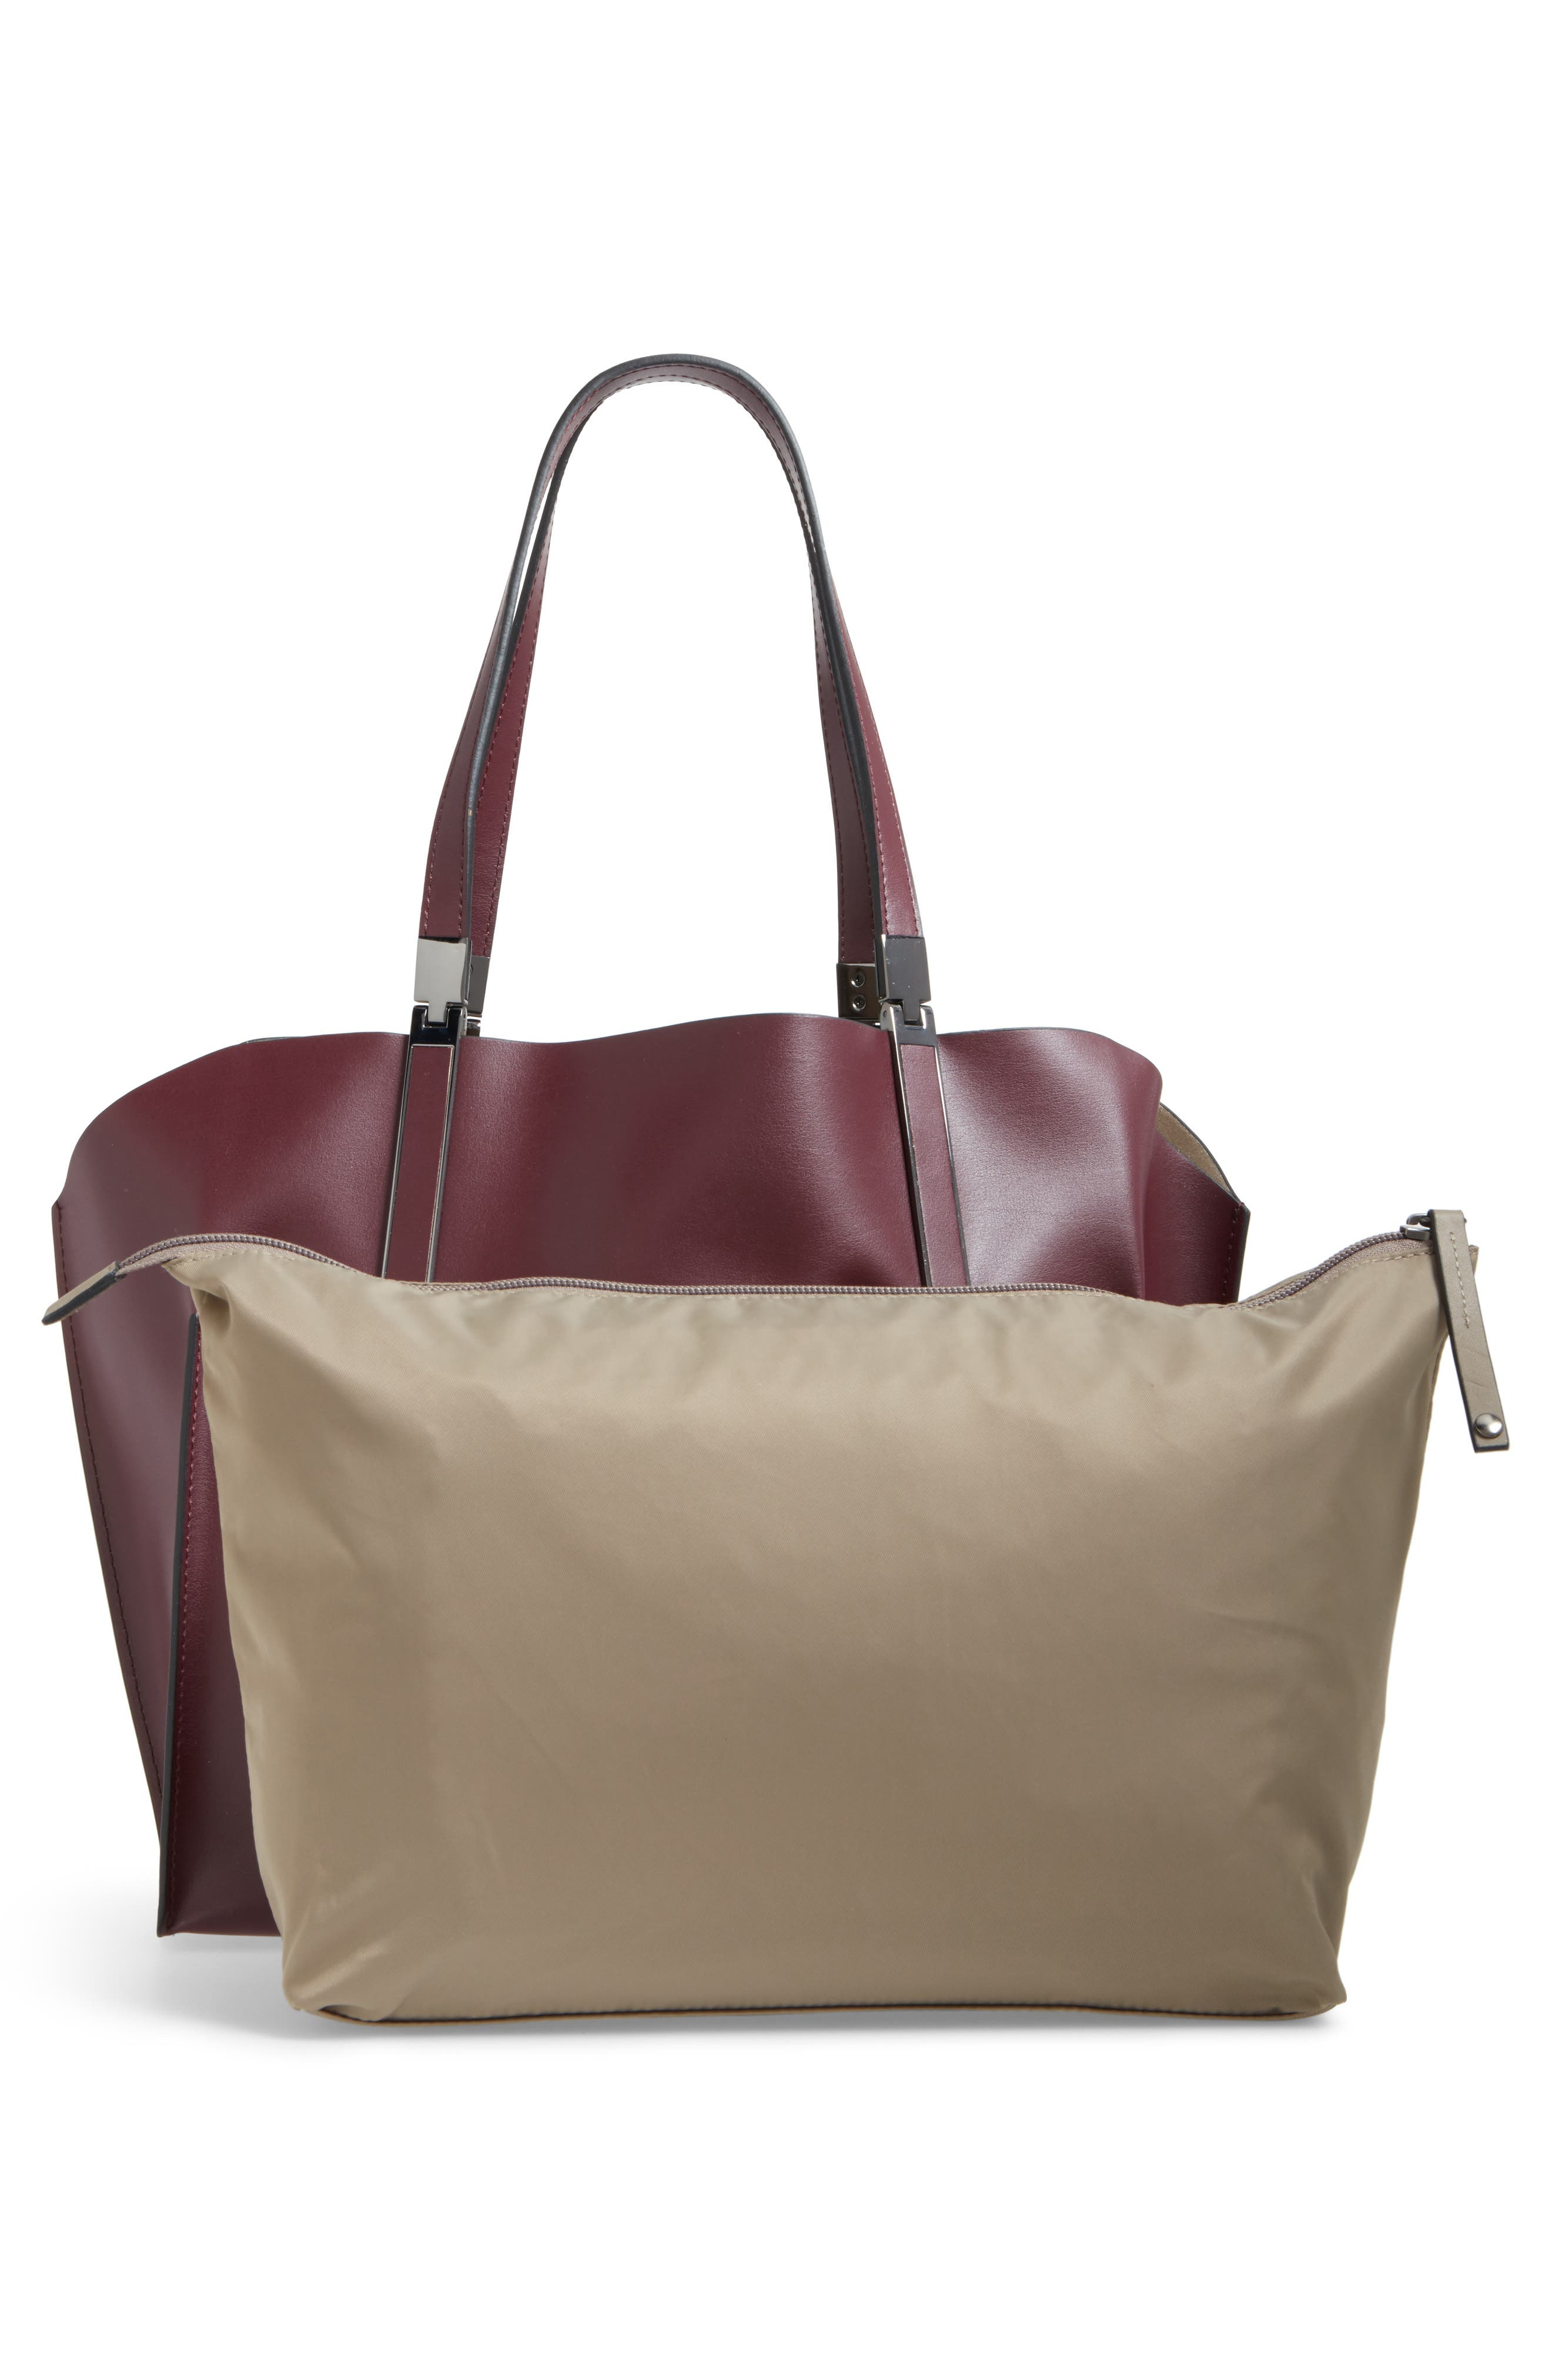 LODIS Silicon Valley Collection Under Lock & Key - Anita RFID East/West Leather Satchel,                             Alternate thumbnail 9, color,